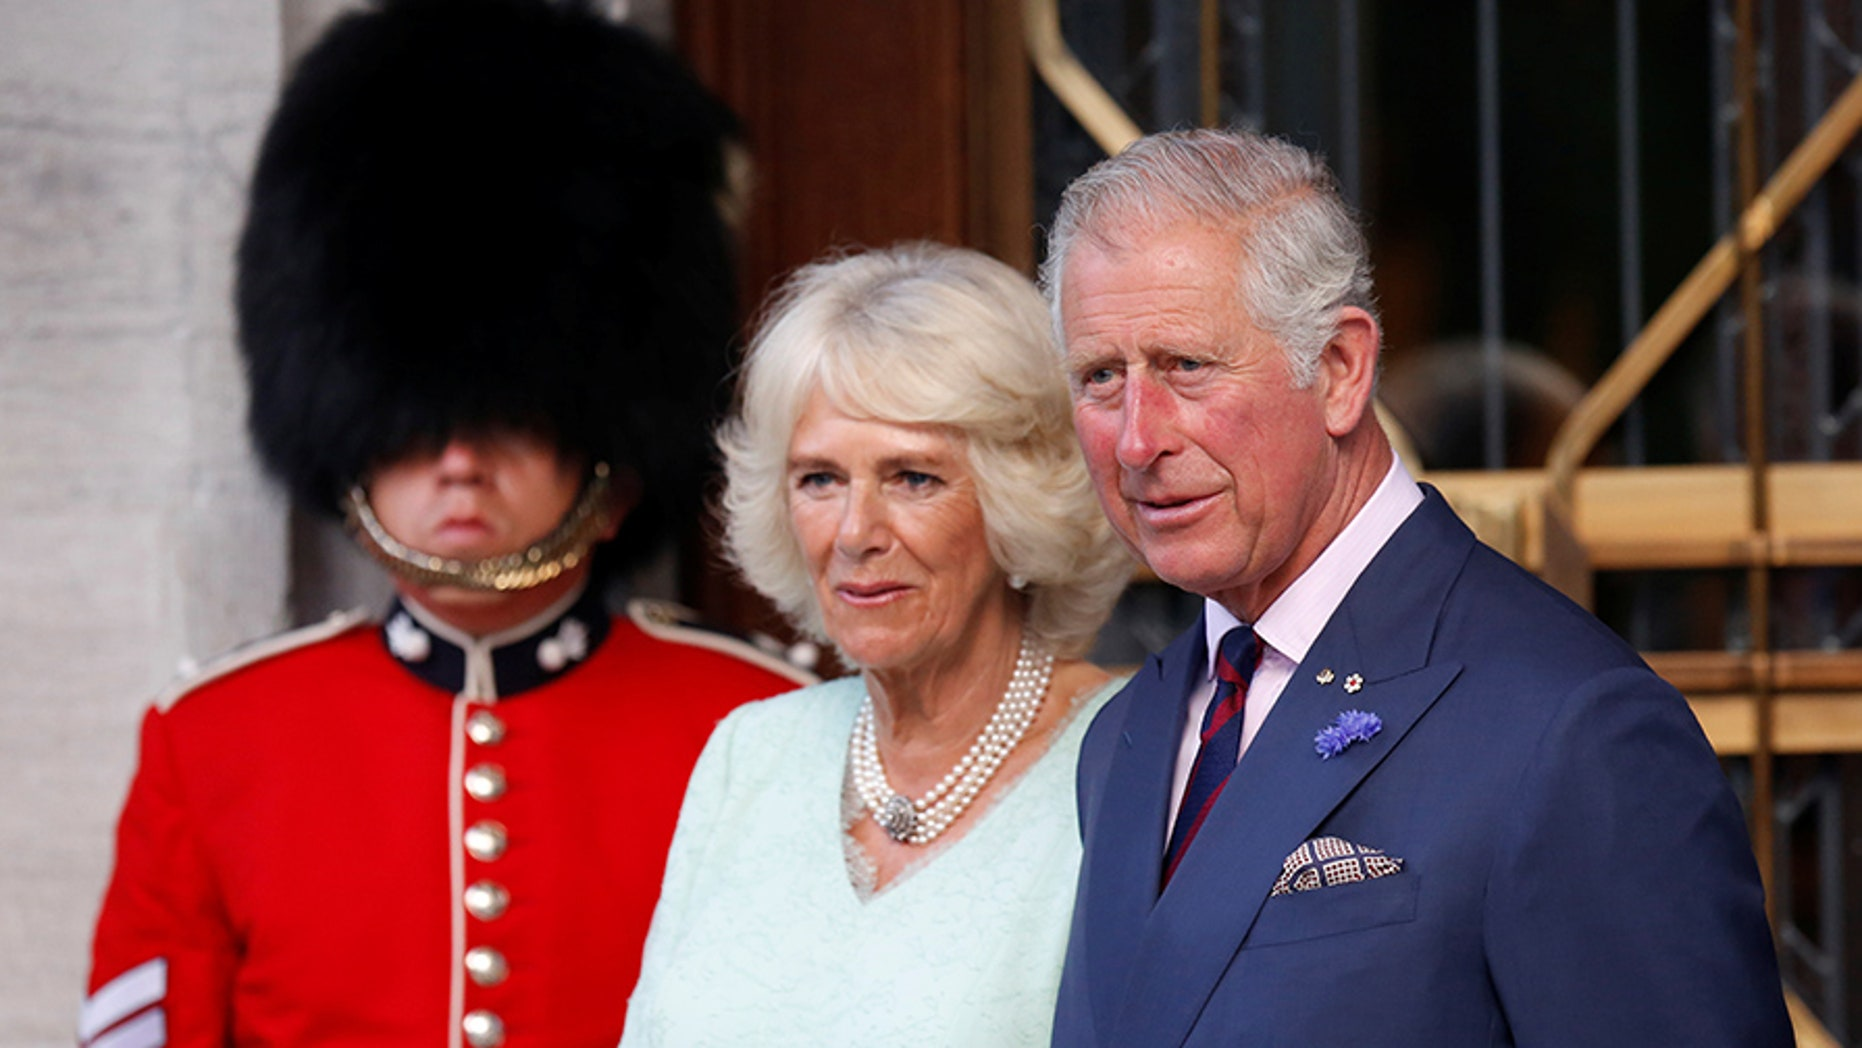 Prince Charles with Camilla, Duchess of Cornwall.